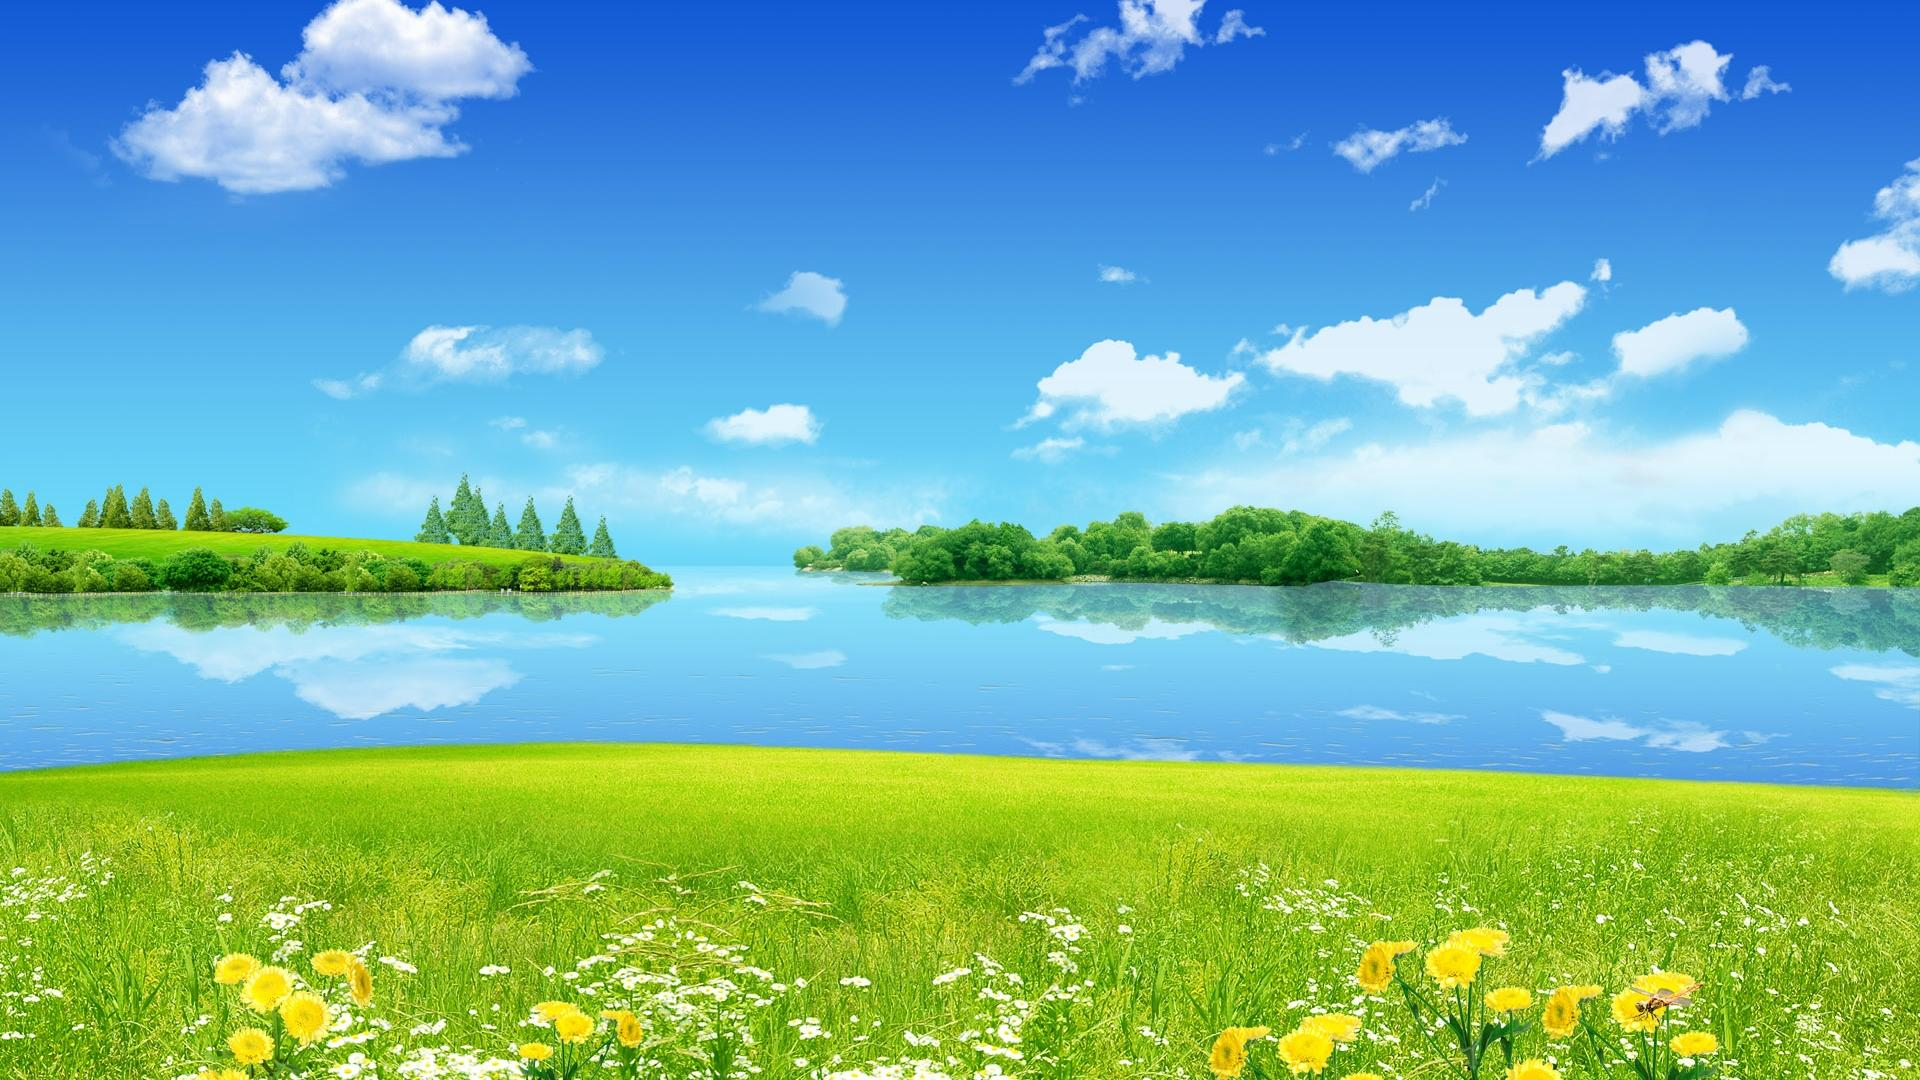 Blue Sea Sourrending Yellow Flower And Green Grass Nice Wallpapers Hd Free Summer Season